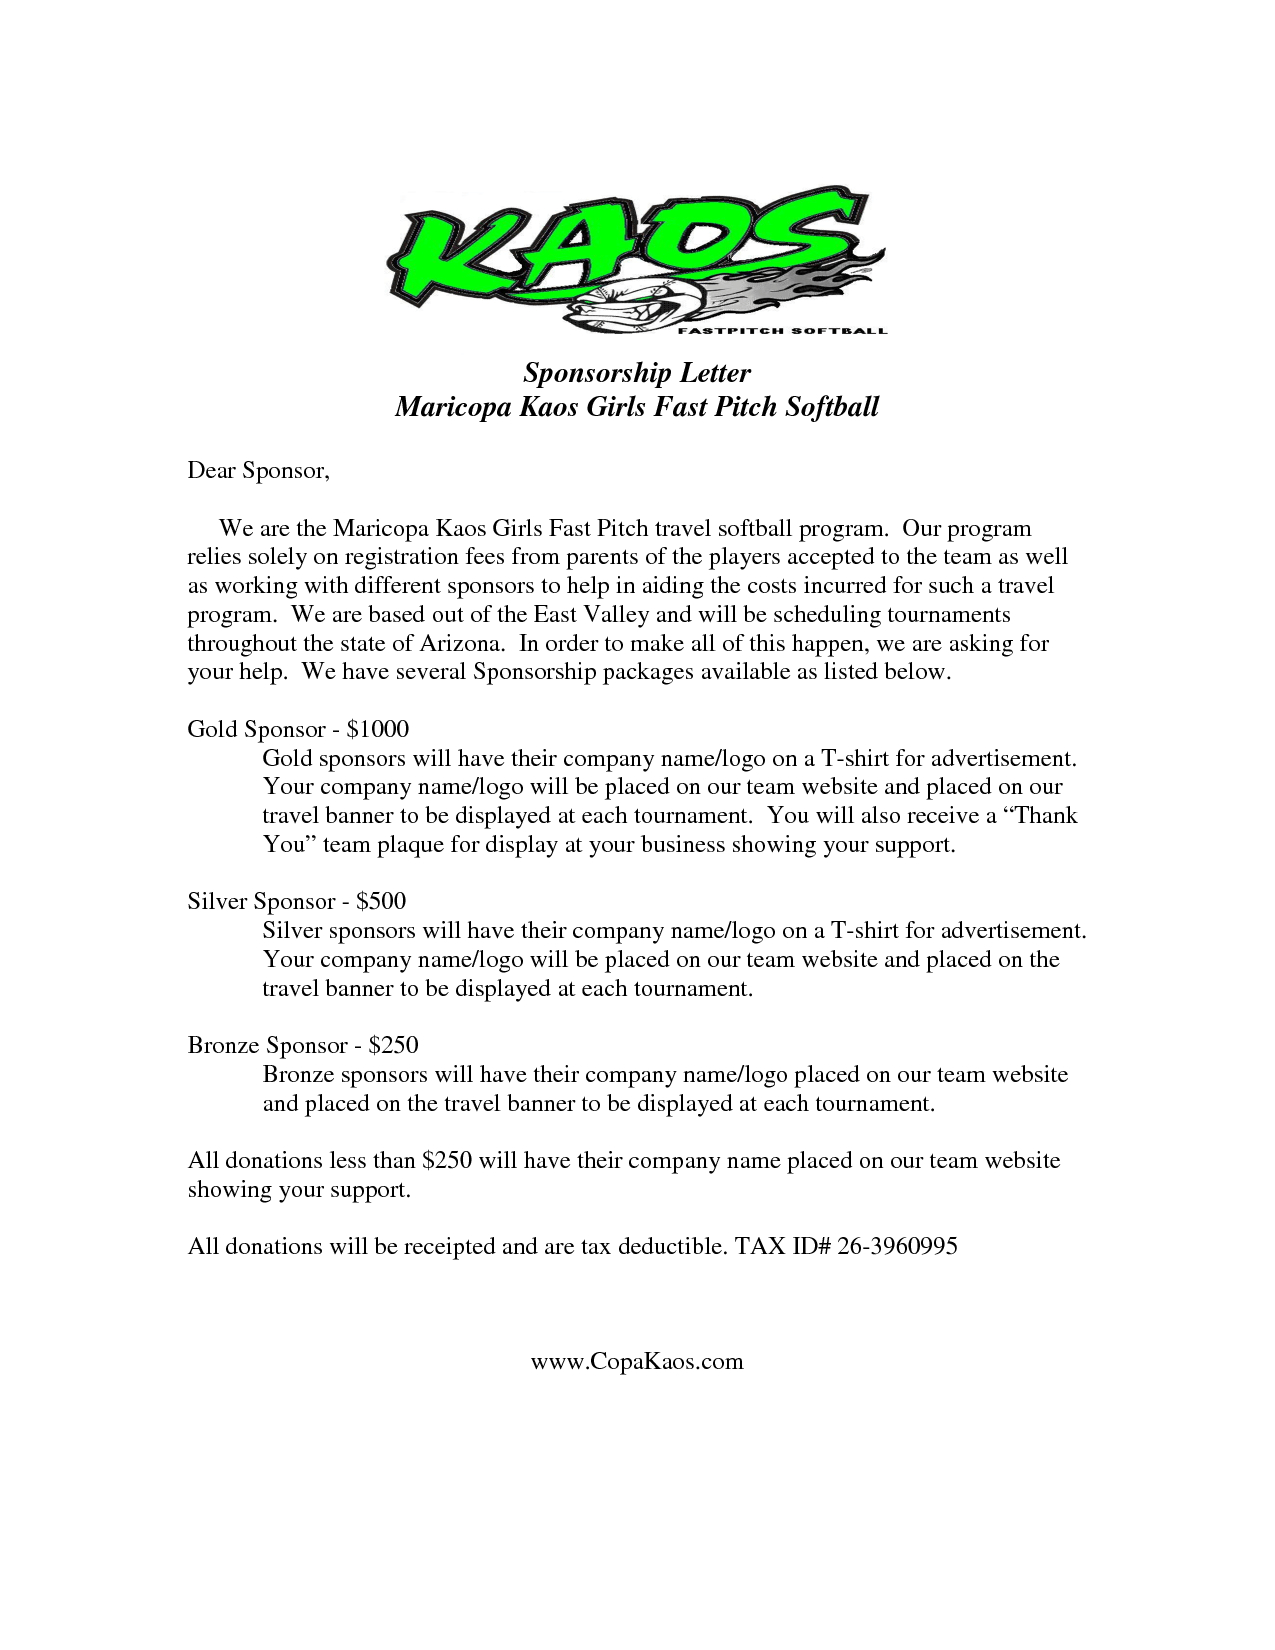 baseball sponsorship letter template example-Image result for sample sponsor request letter donation 2-m